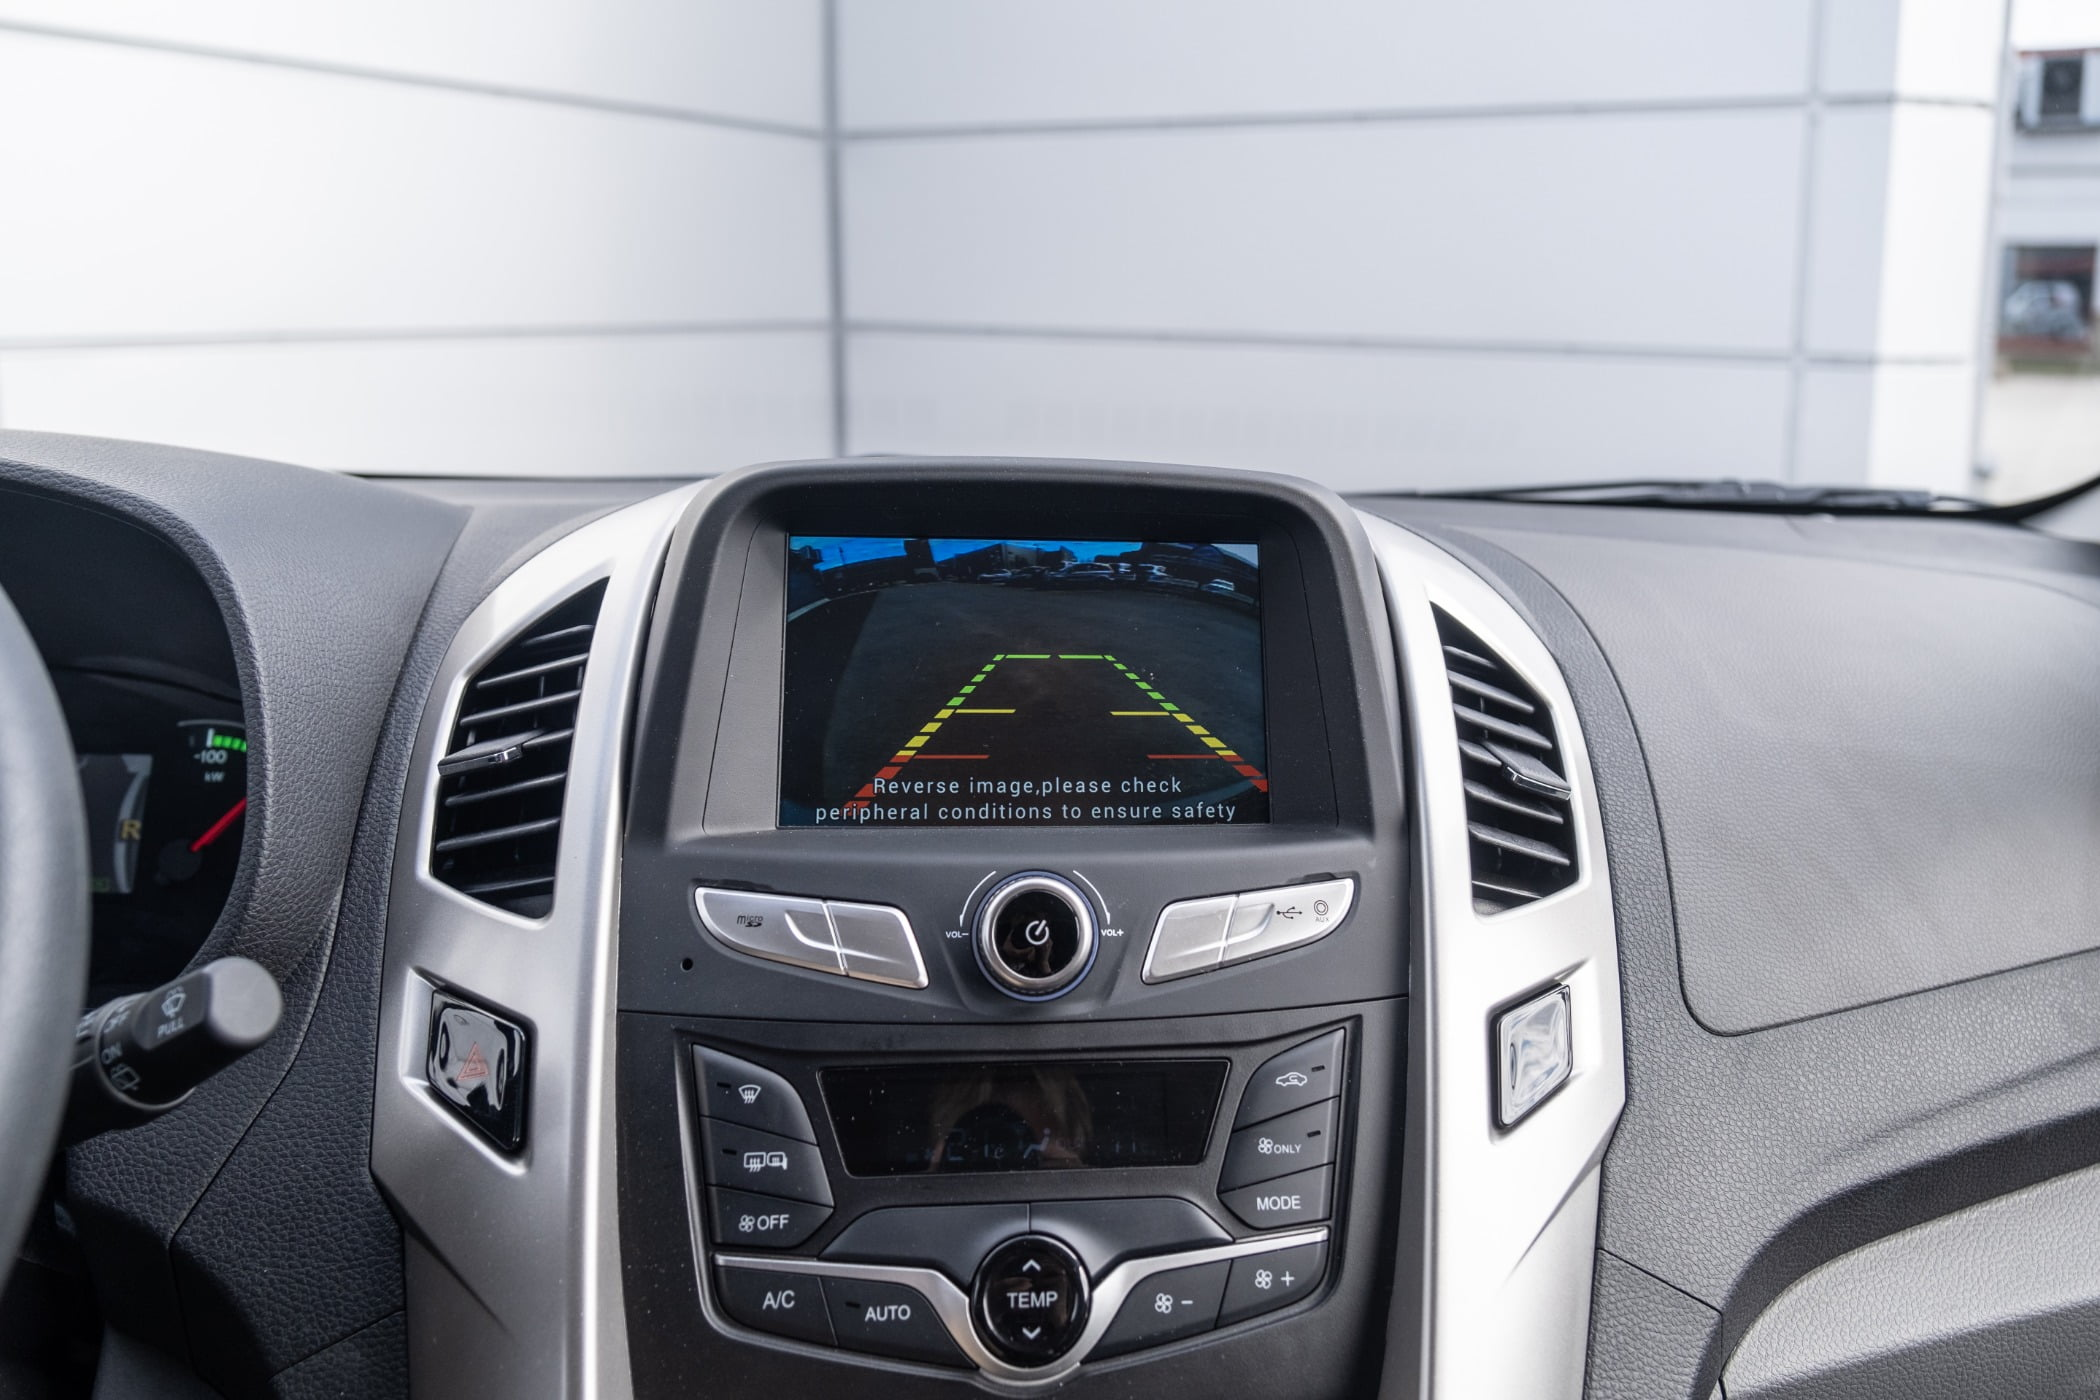 Personal luxury car, Steering part, Motor vehicle, Center console, Automotive design, Media player